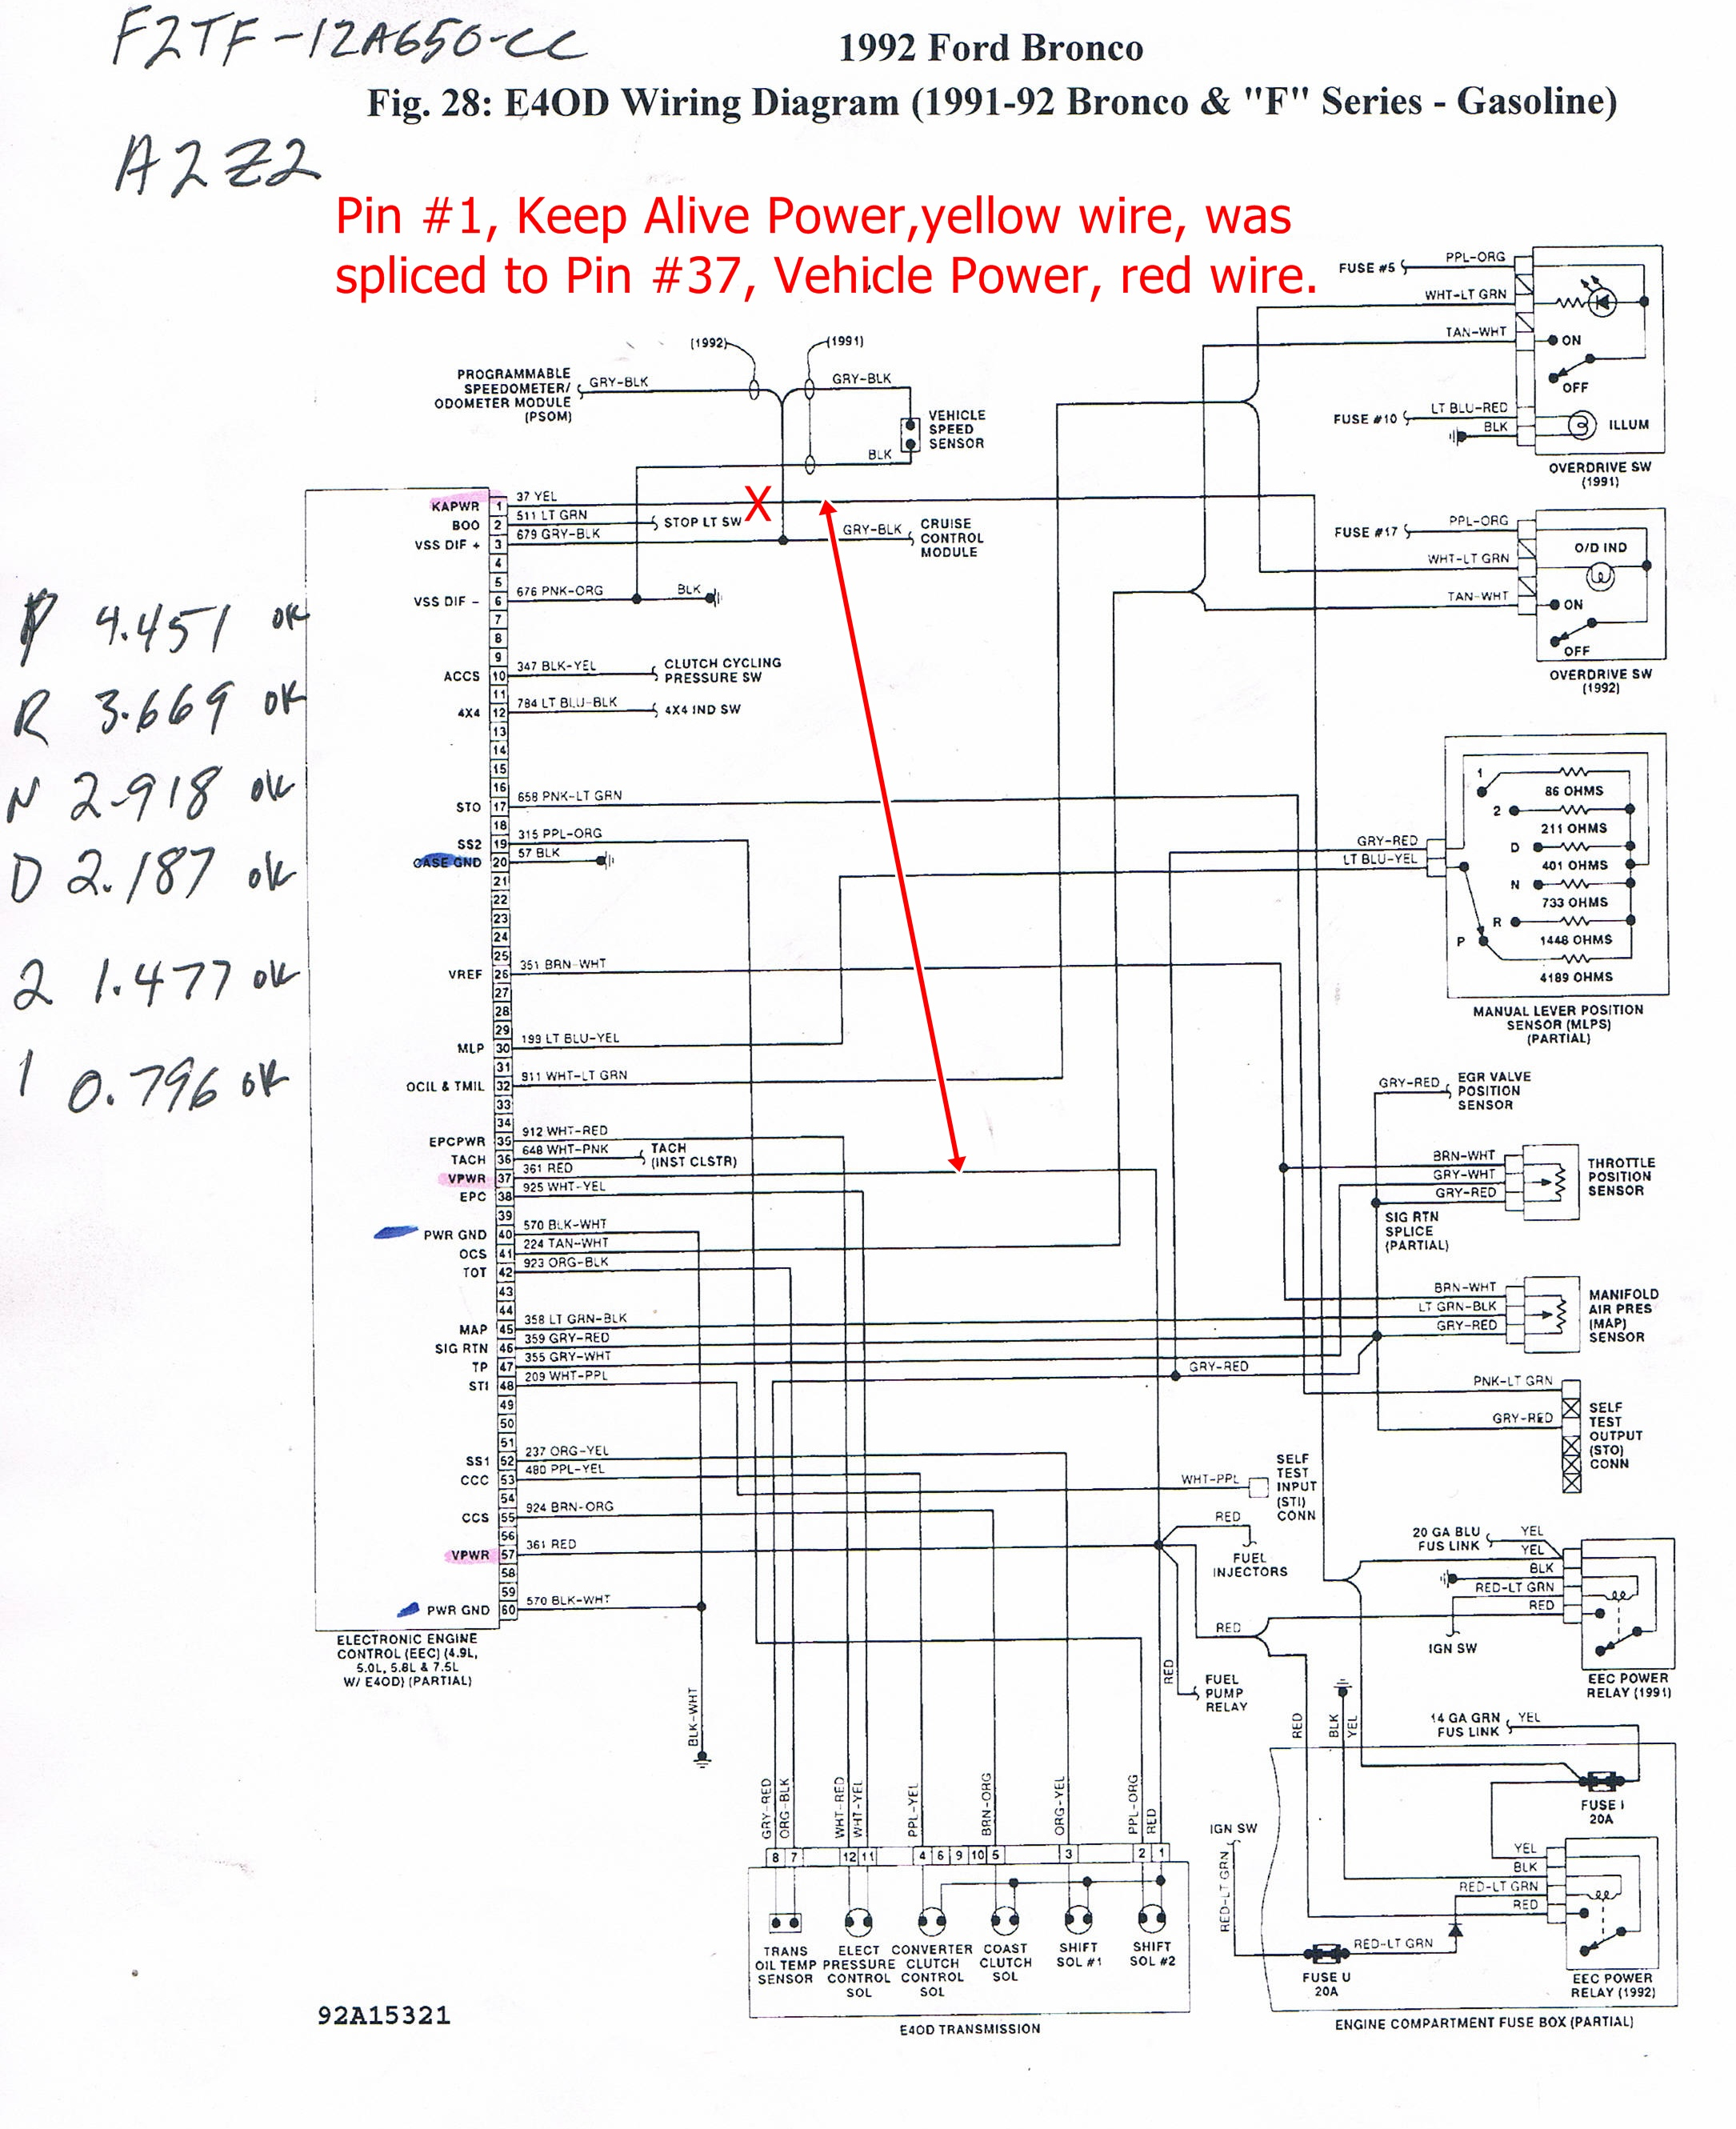 volvo headlamp wire harness auto electrical wiring diagram rh stanford edu  uk co gov hardtobelieve me Amp Wiring Diagram 2005 Lexus 1997 Lexus ES300  Fuse ...